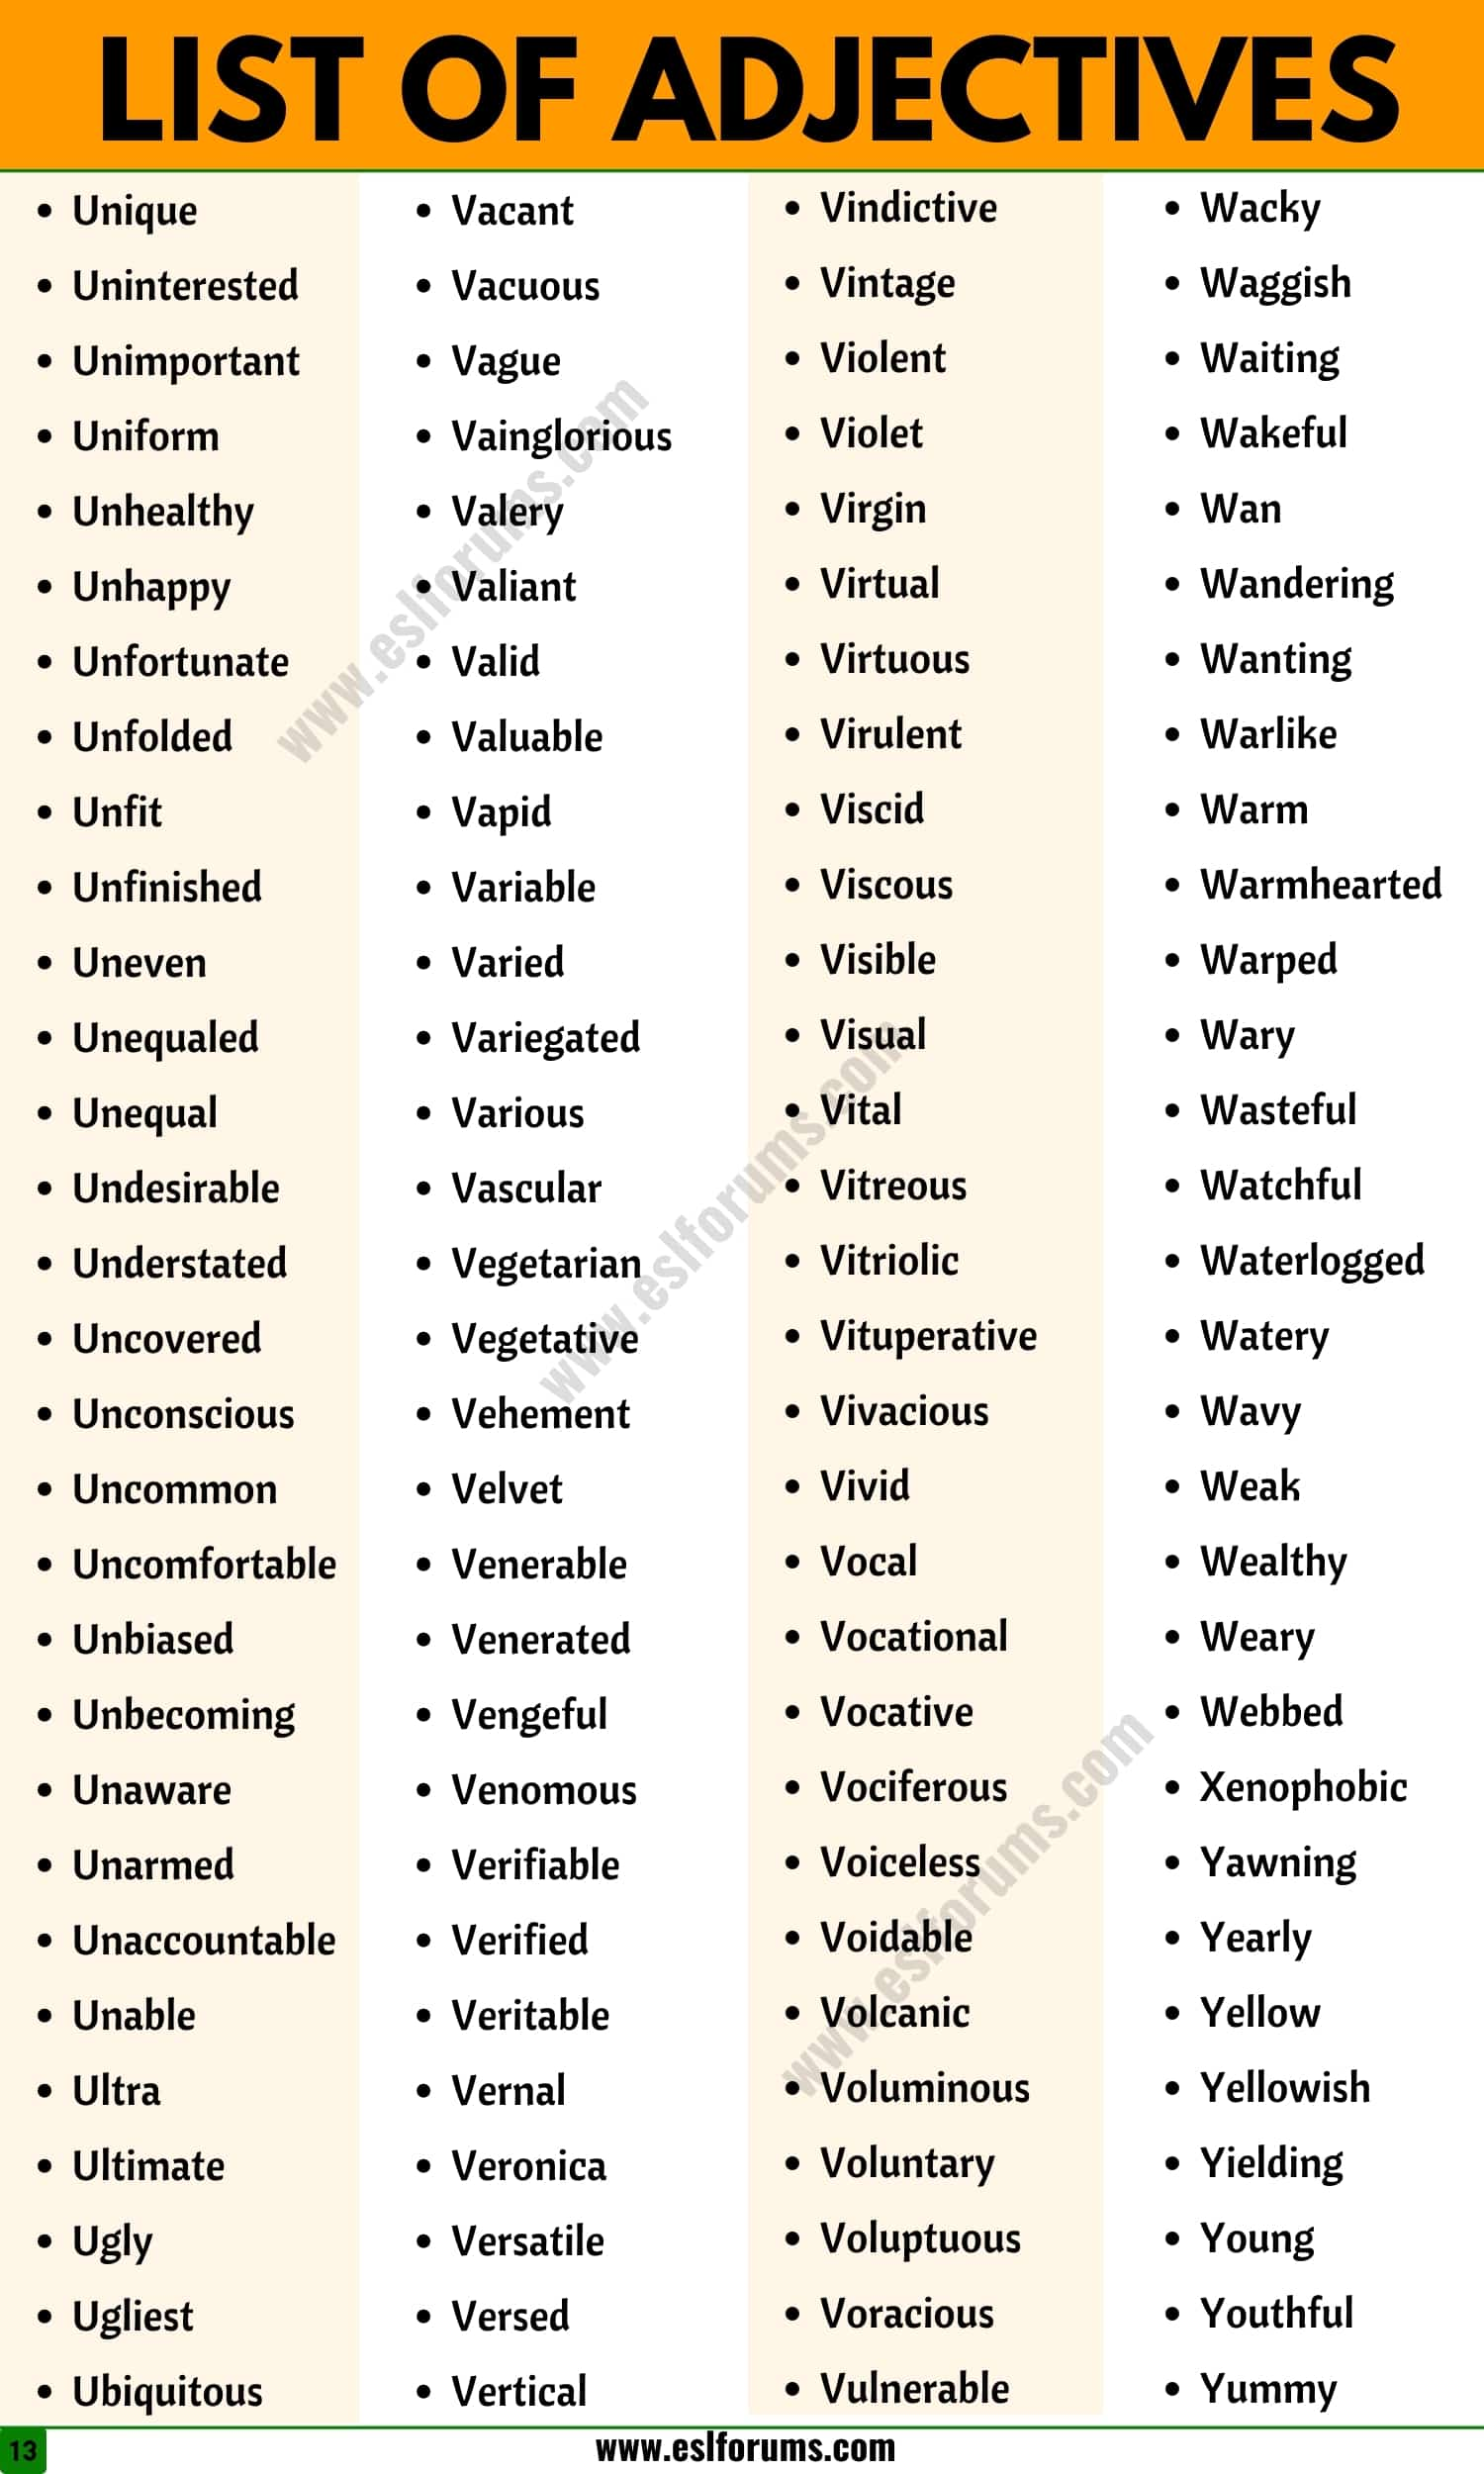 List of Adjectives: A Huge List of 1500+ Adjective Examples in English (from A to Z)